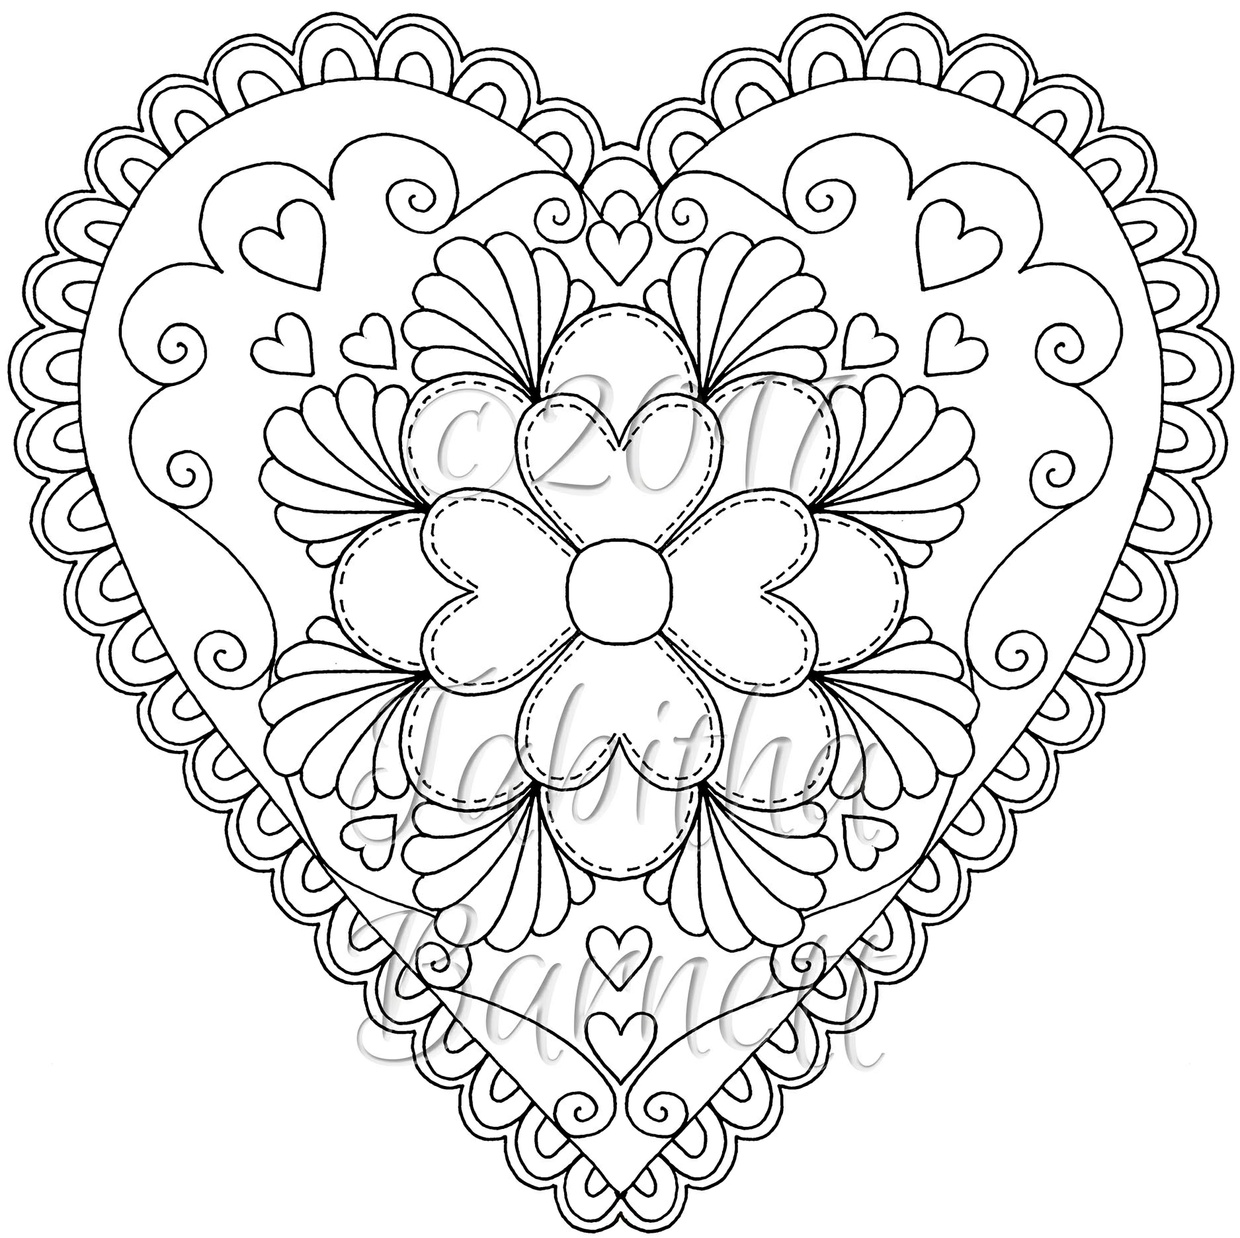 tangled hearts adult coloring book pdf - Adult Coloring Book Pdf